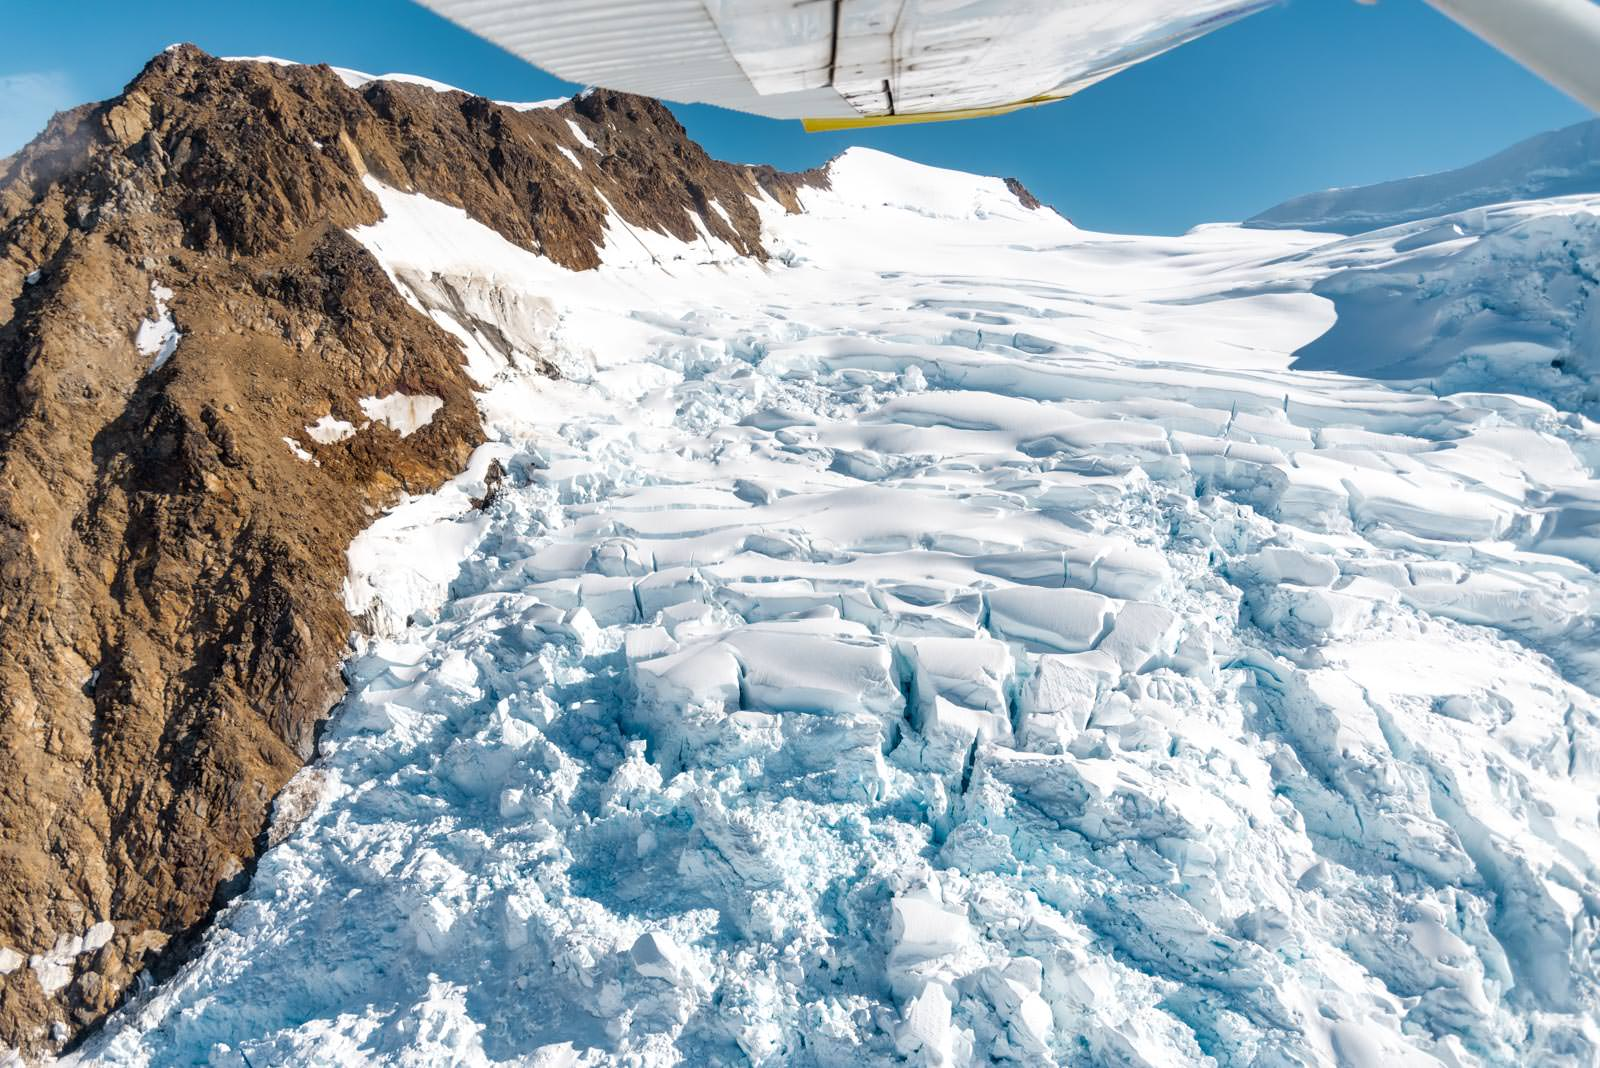 Bagley Icefield - University Range Tour: Upper Bremner Icefall